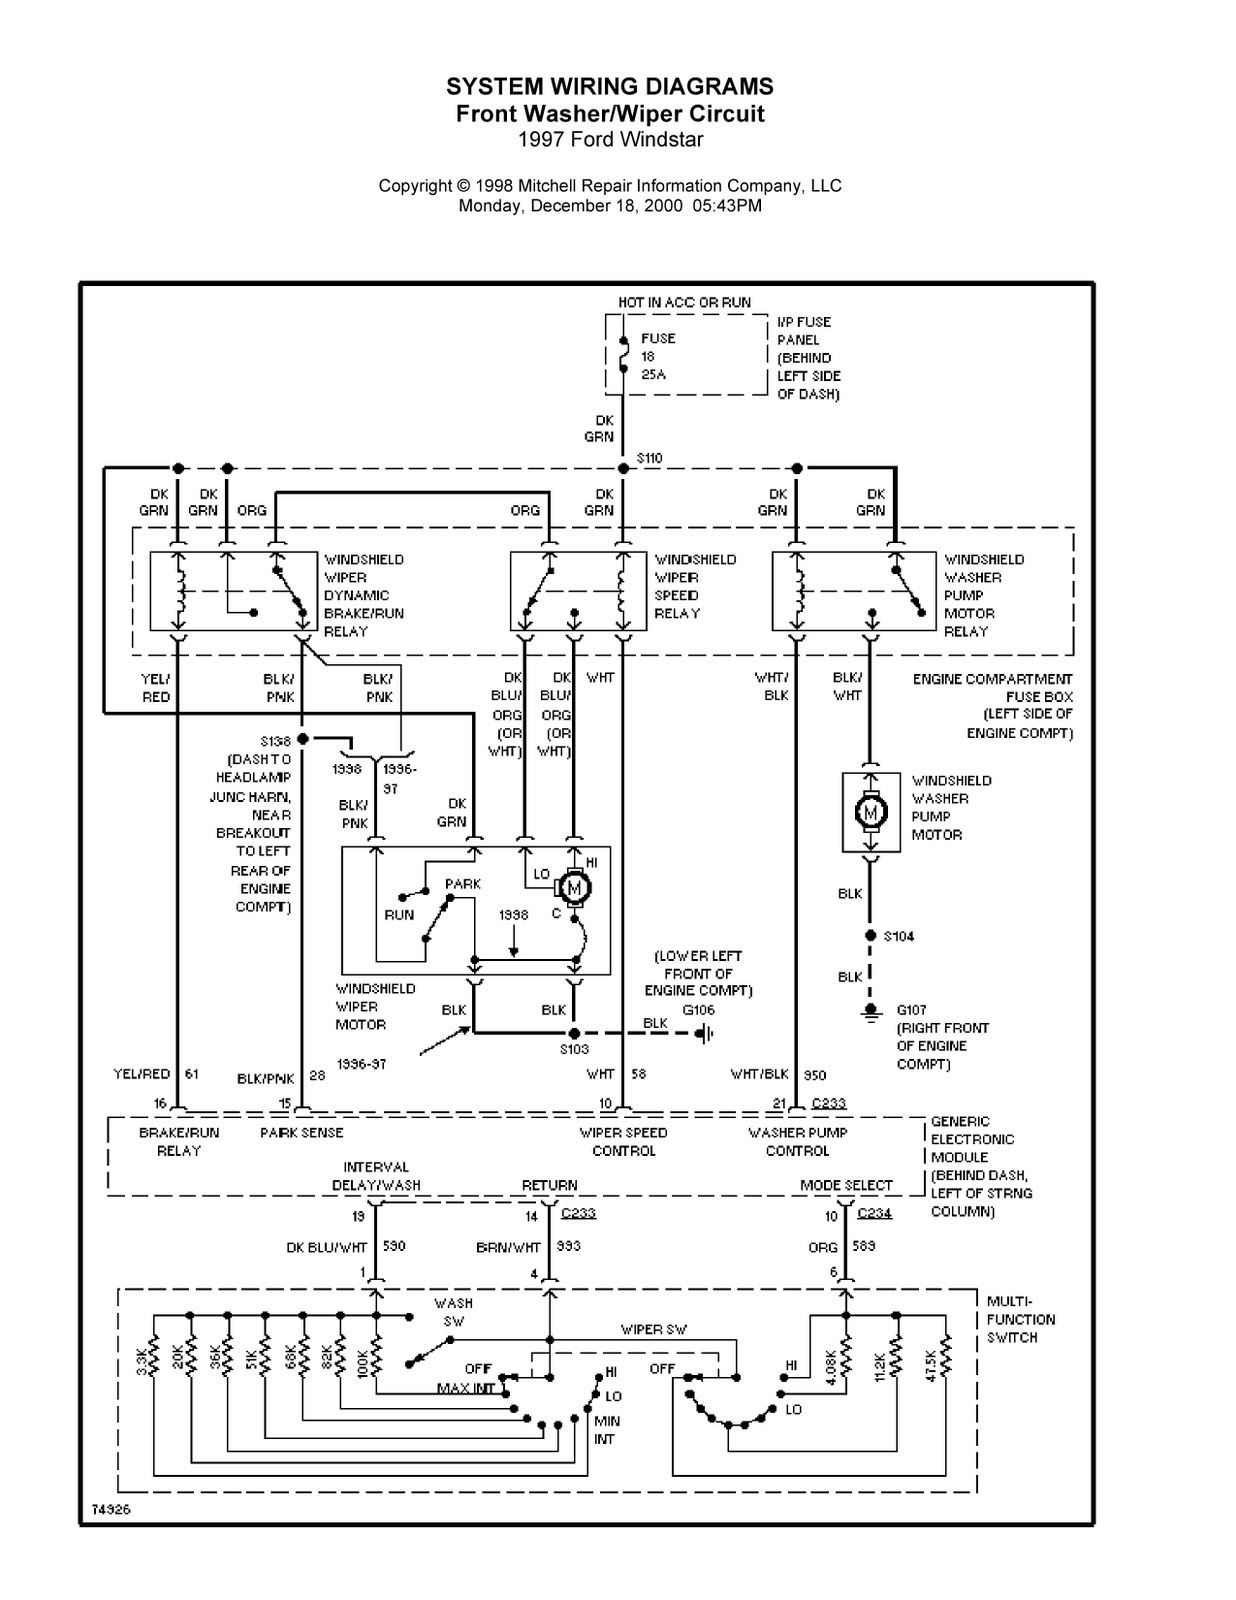 0051 1997 f350 wiring diagram 1997 f350 pcm wiring diagram \u2022 wiring 2010 F350 at readyjetset.co